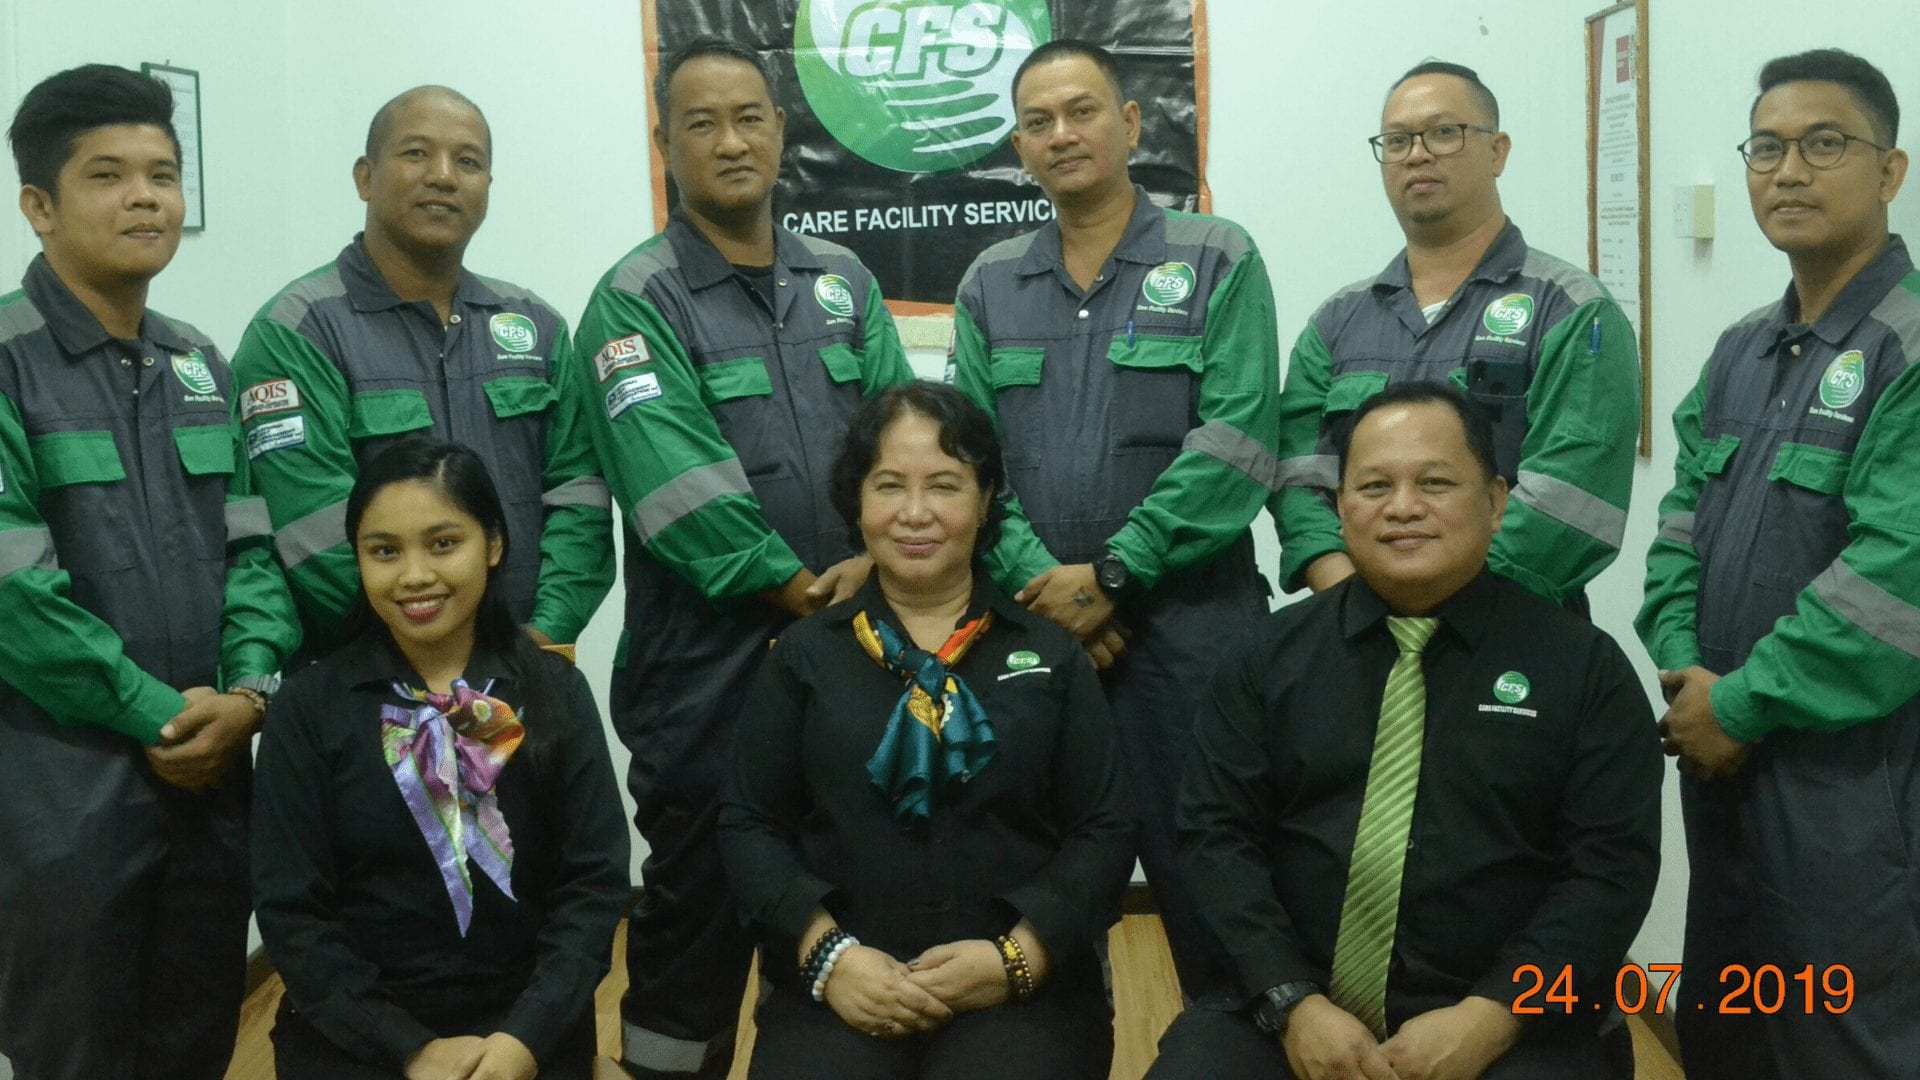 Care Facility Services Sdn Bhd